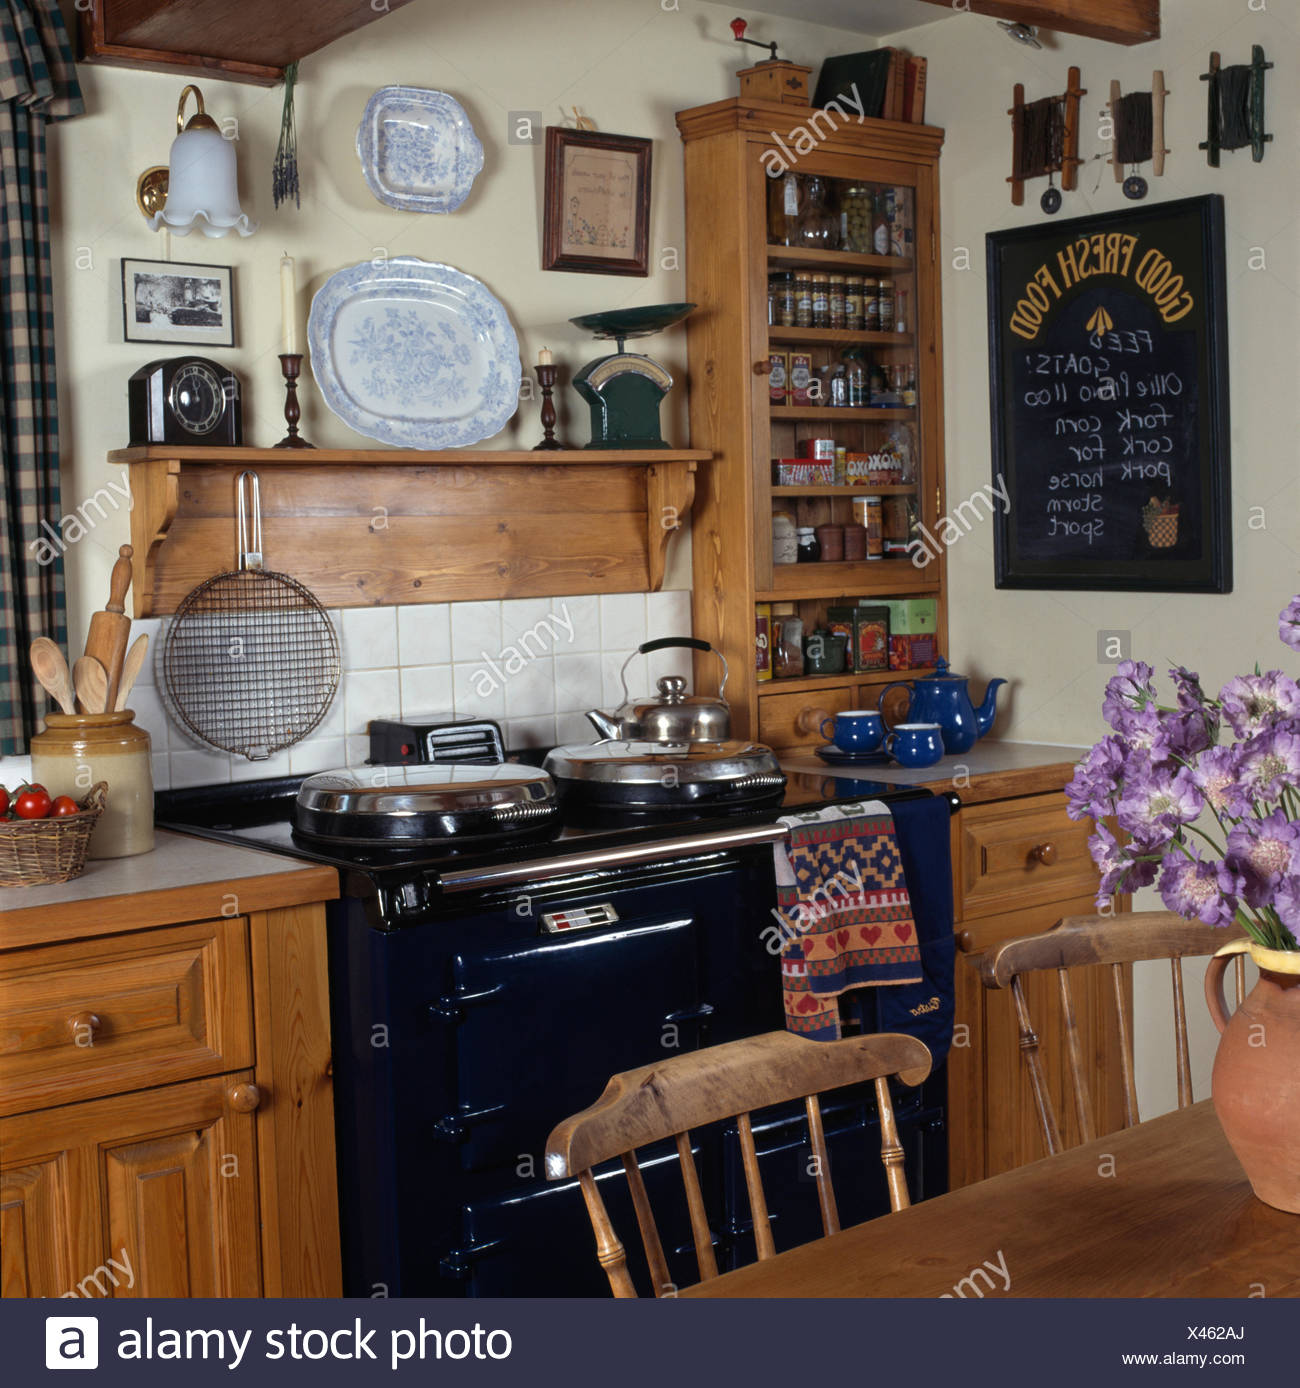 Blue Cottage Kitchen Cabinets: Small Country Kitchens Domestic Stock Photos & Small